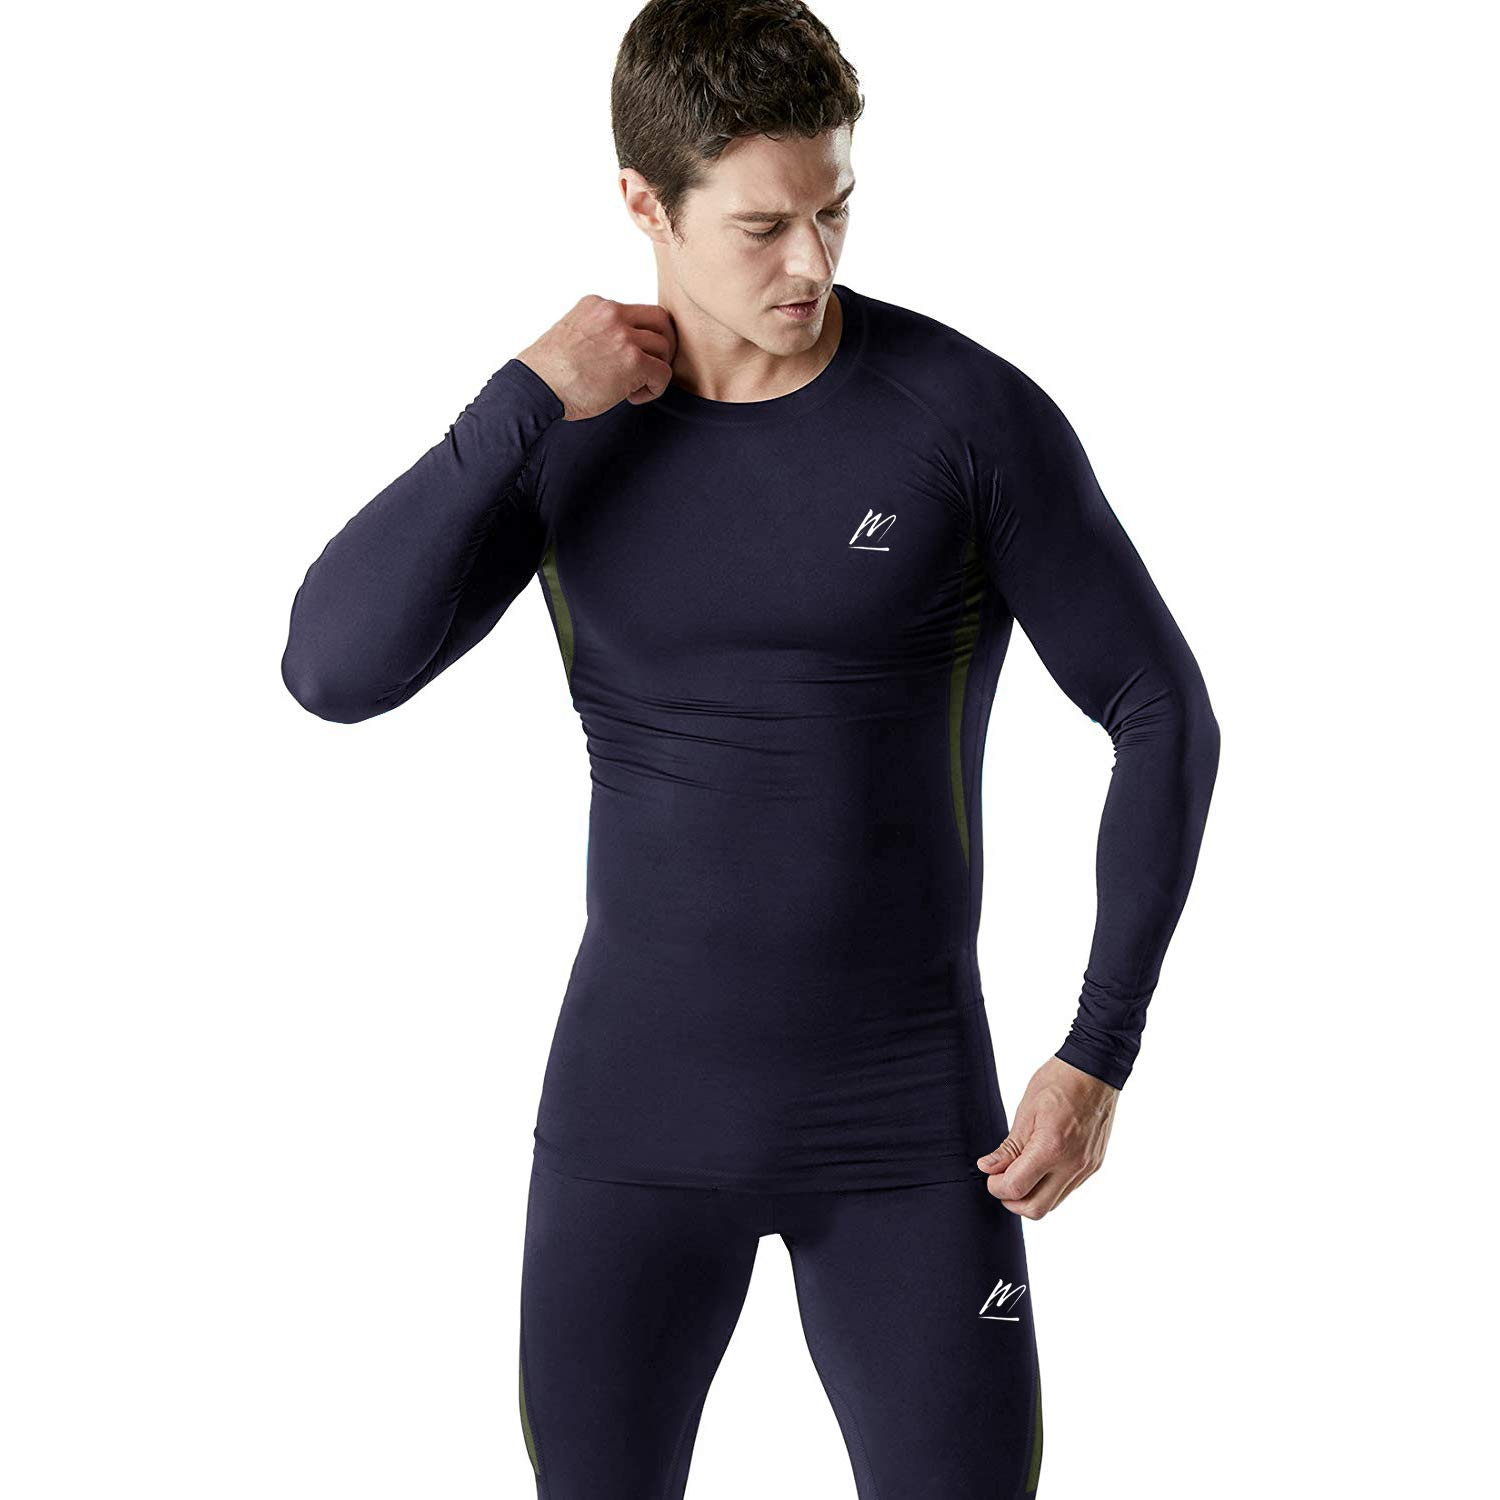 Men's Thermal Underwear Set Sports Long Johns Base Layer Compression Gear for.